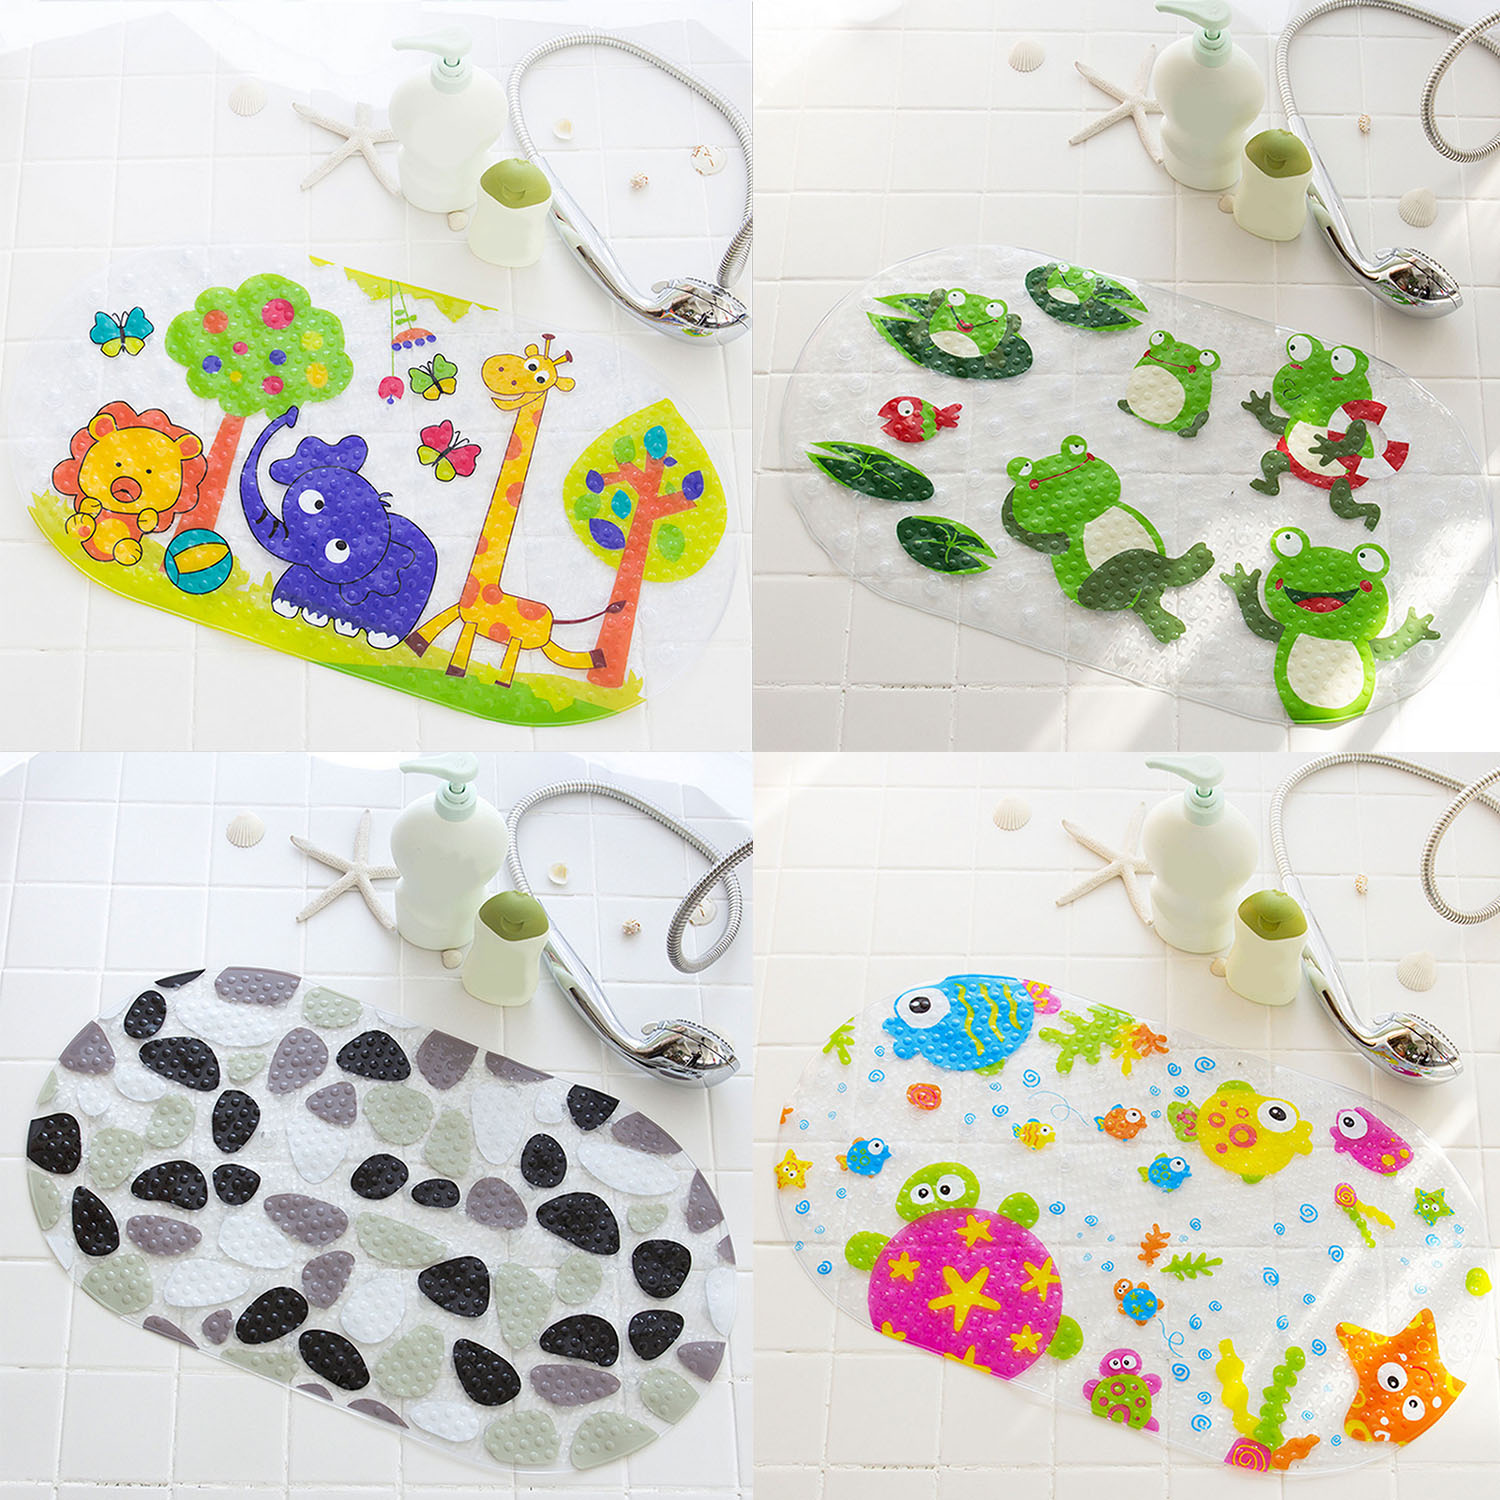 Cute Cartoon Silicone Anti-Skid Baby Bath Mat with Suction Cups Toddler Shower C